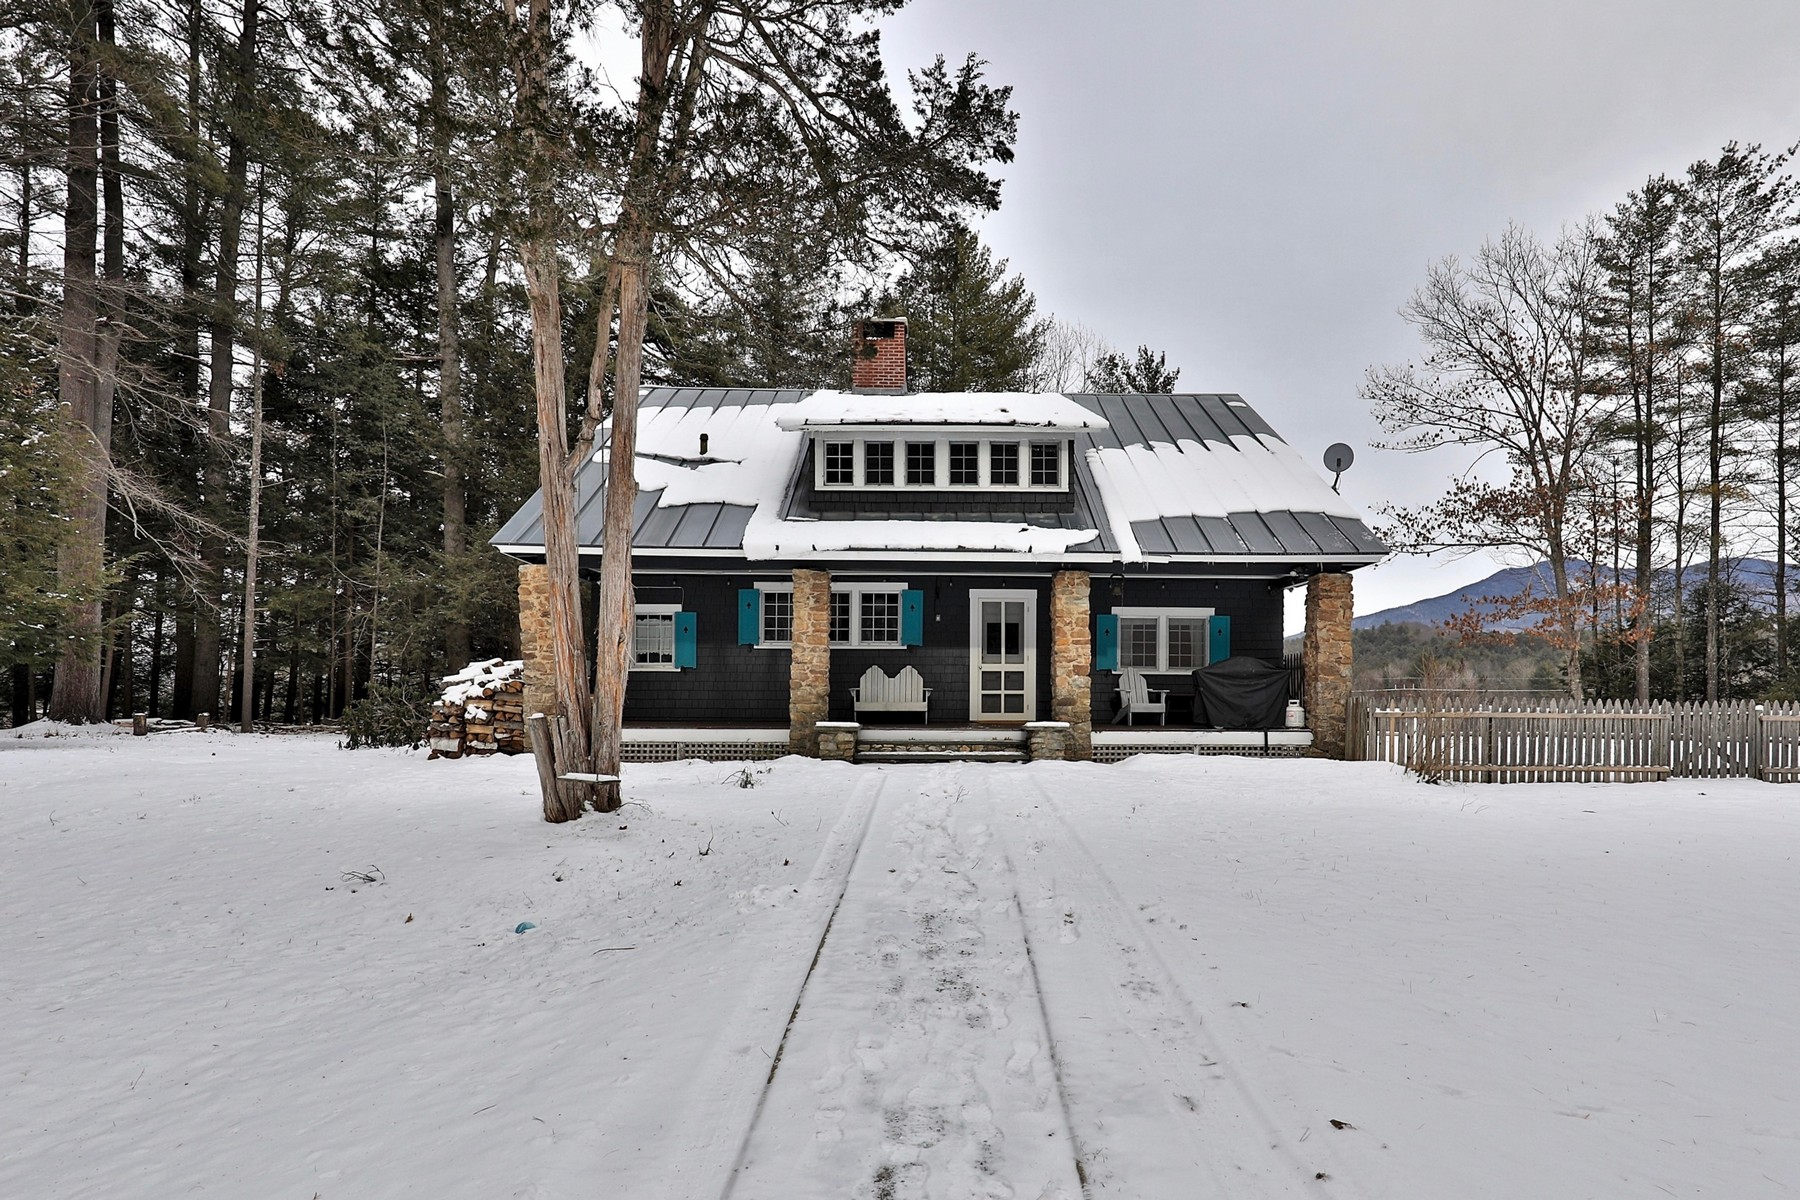 Single Family Homes for Sale at Secluded Mountain Retreat 235 Amsden School Road Weathersfield, Vermont 05151 United States